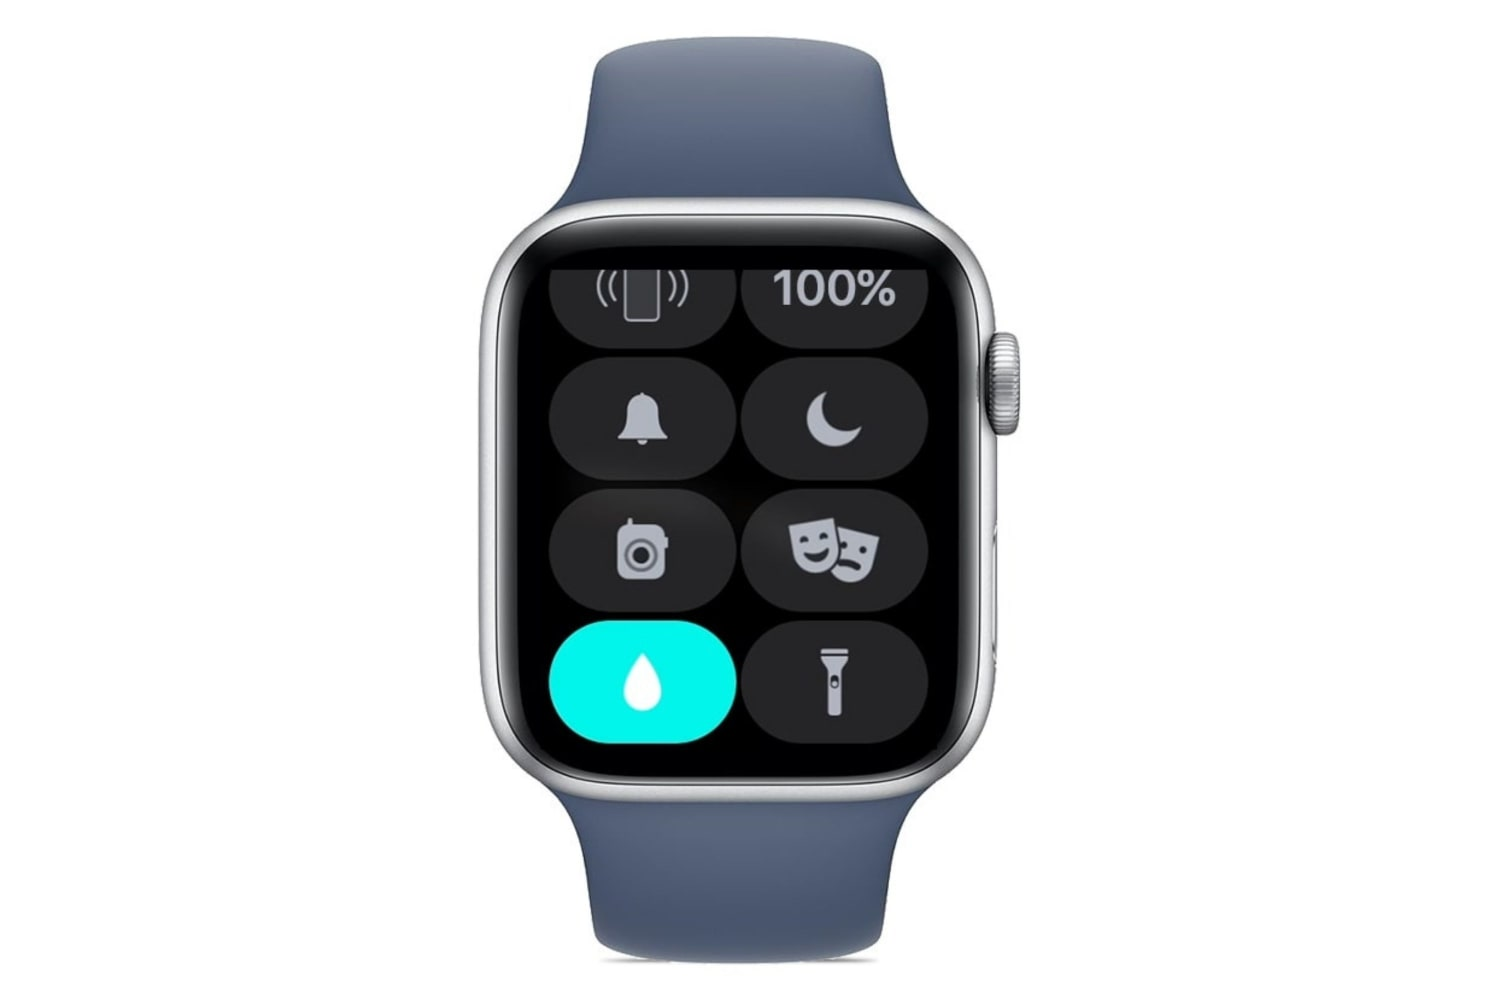 apple-watch-water-lock-and-eject-feature-could-be-in-new-2020-iphone-20200909-1